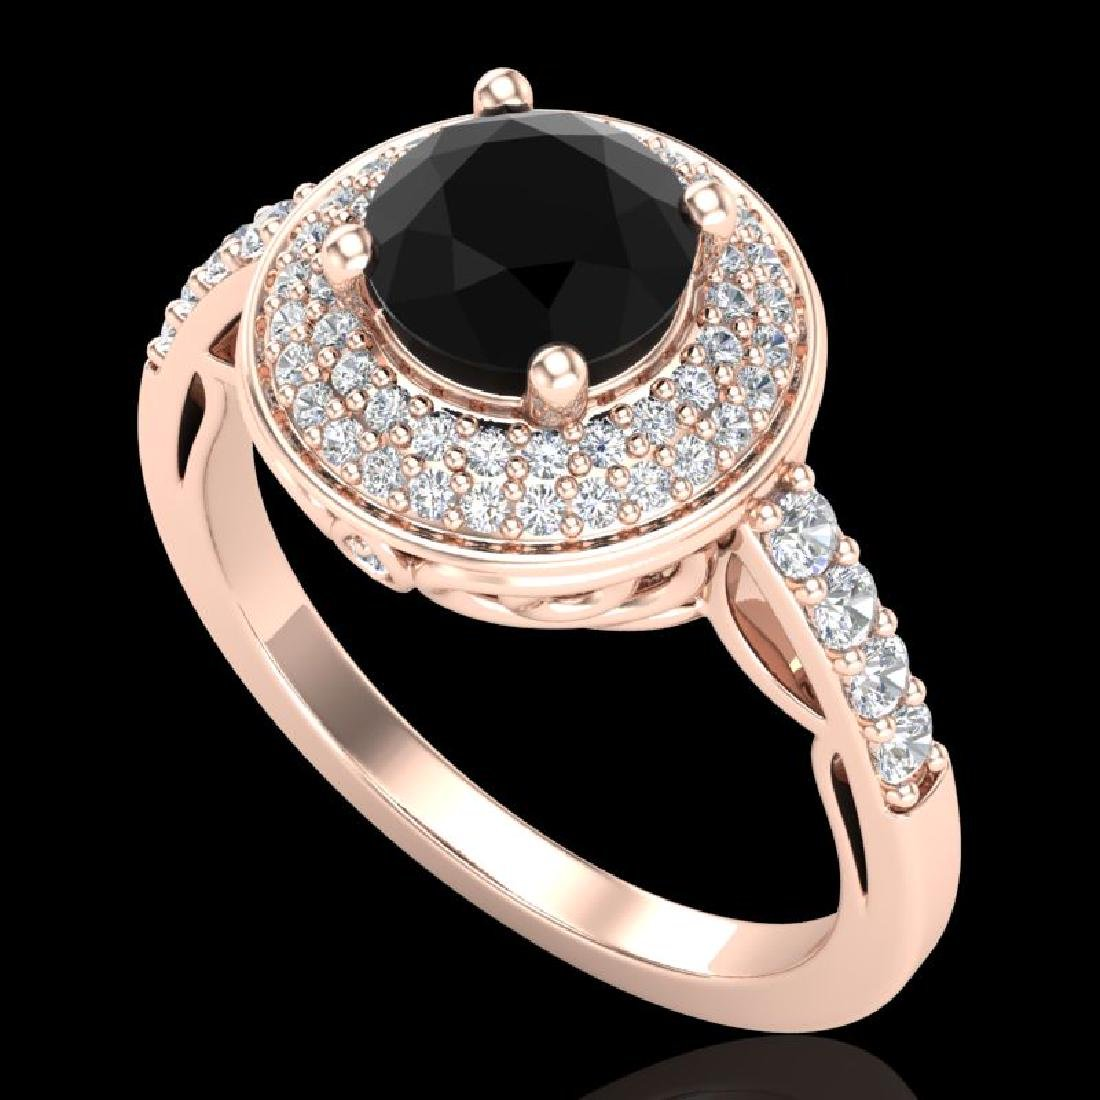 1.7 CTW Fancy Black Diamond Solitaire Engagement Art